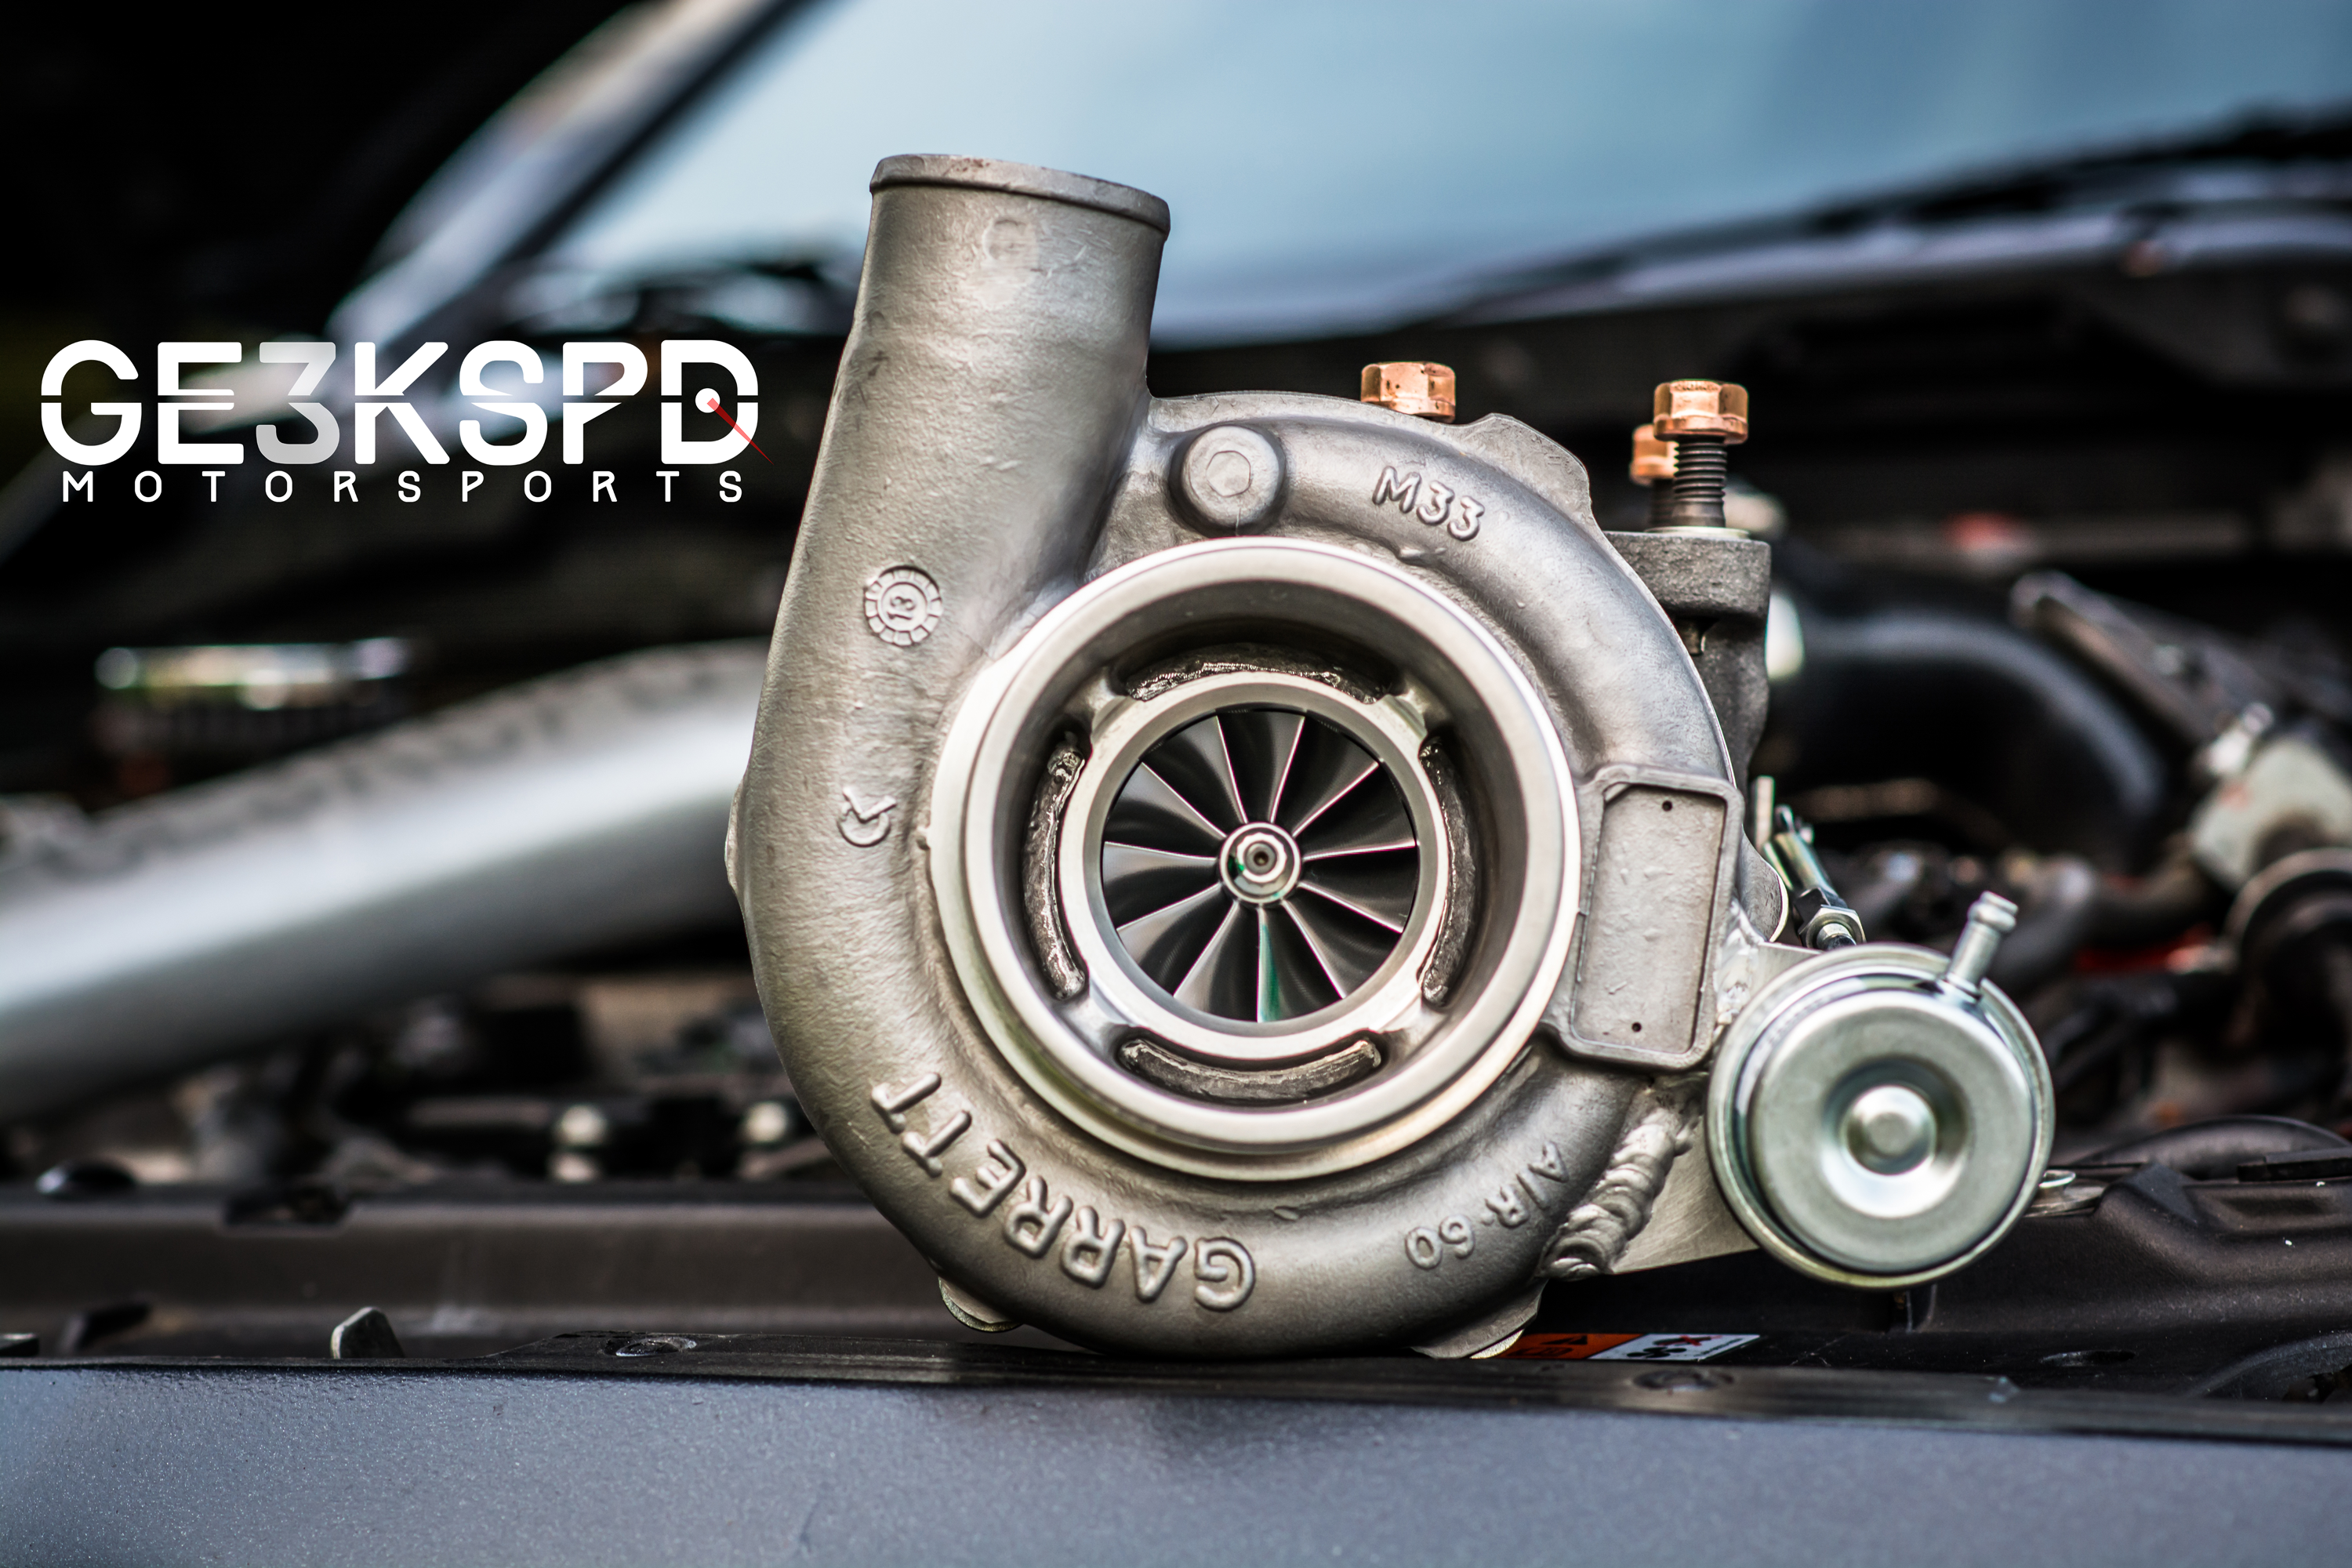 Photography,Mazda,Passion is GE3KSPD